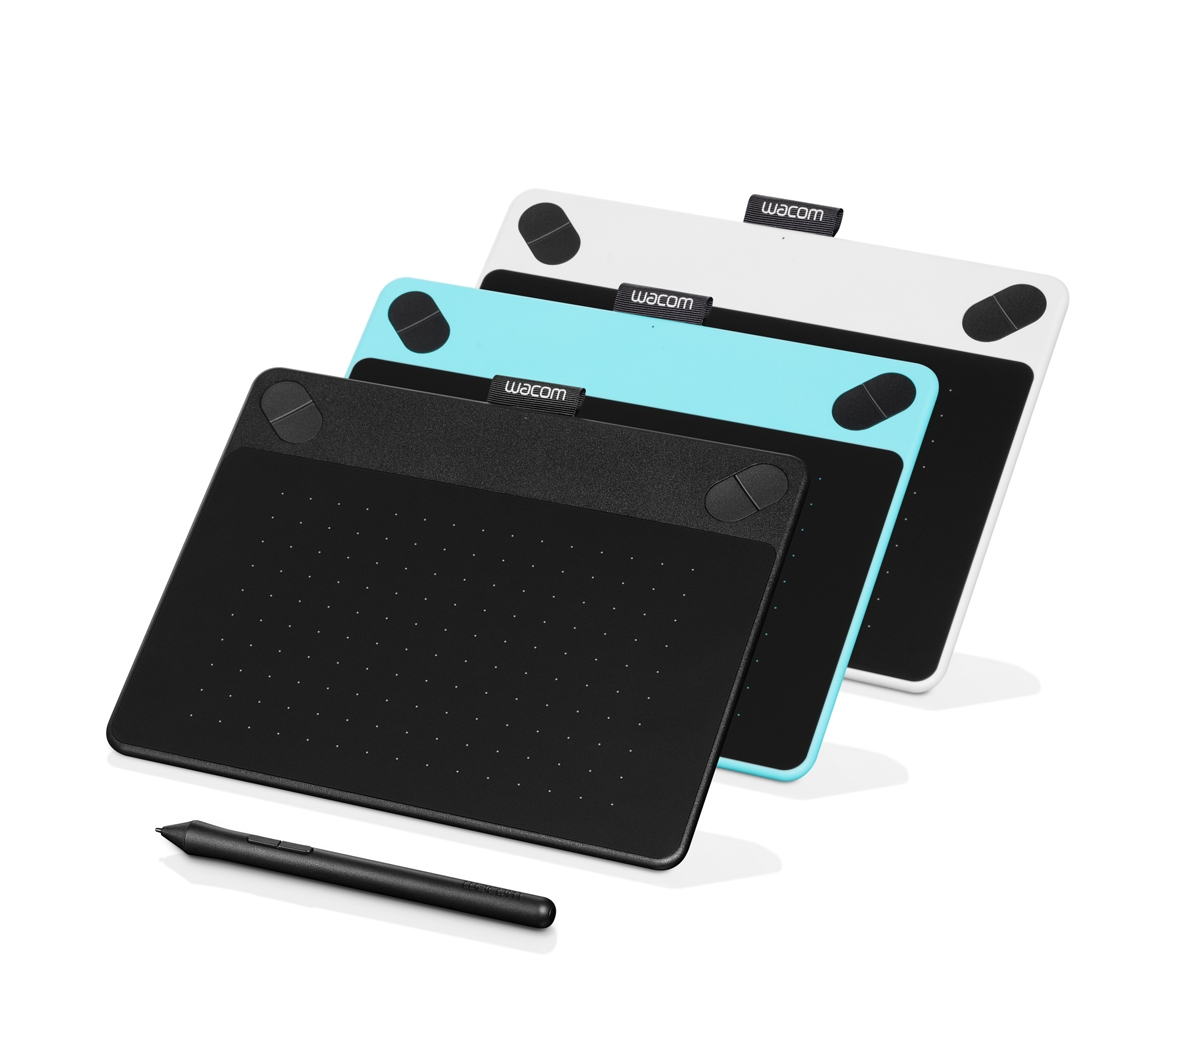 Wacom Launches New Range Of Intuos Tablets Digital Drawing